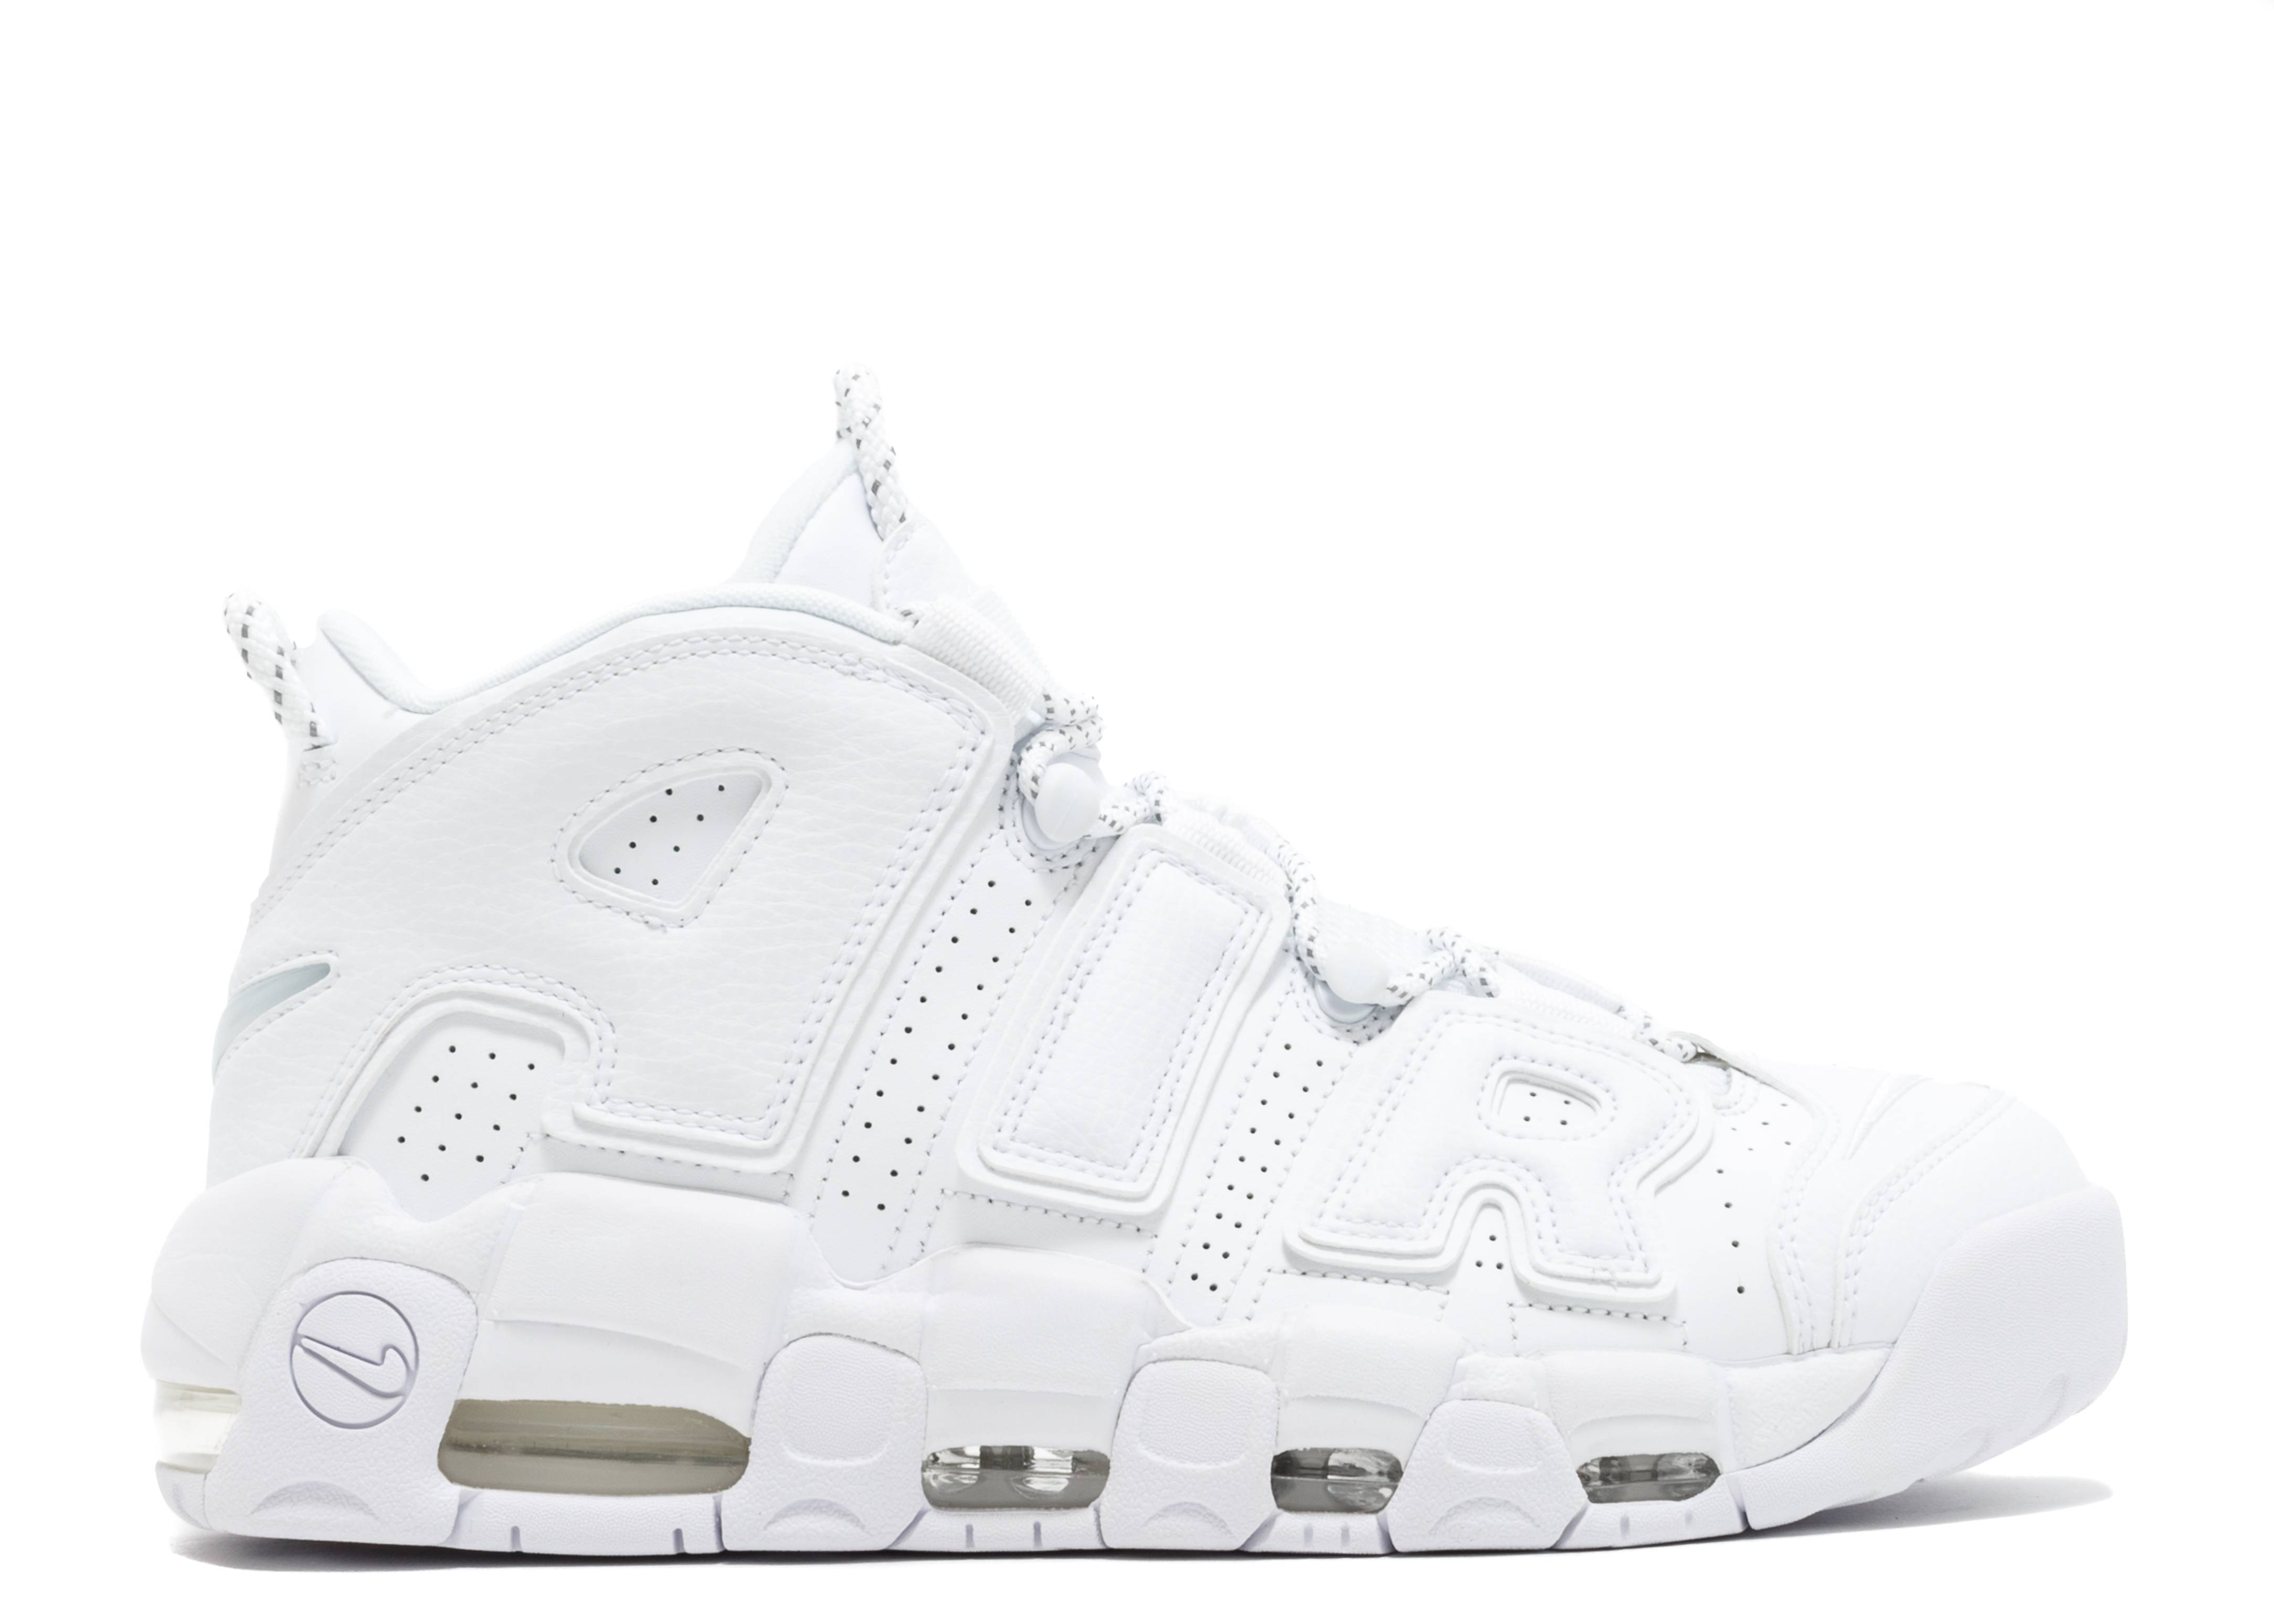 reputable site c402a 78eea nike. air more uptempo 96